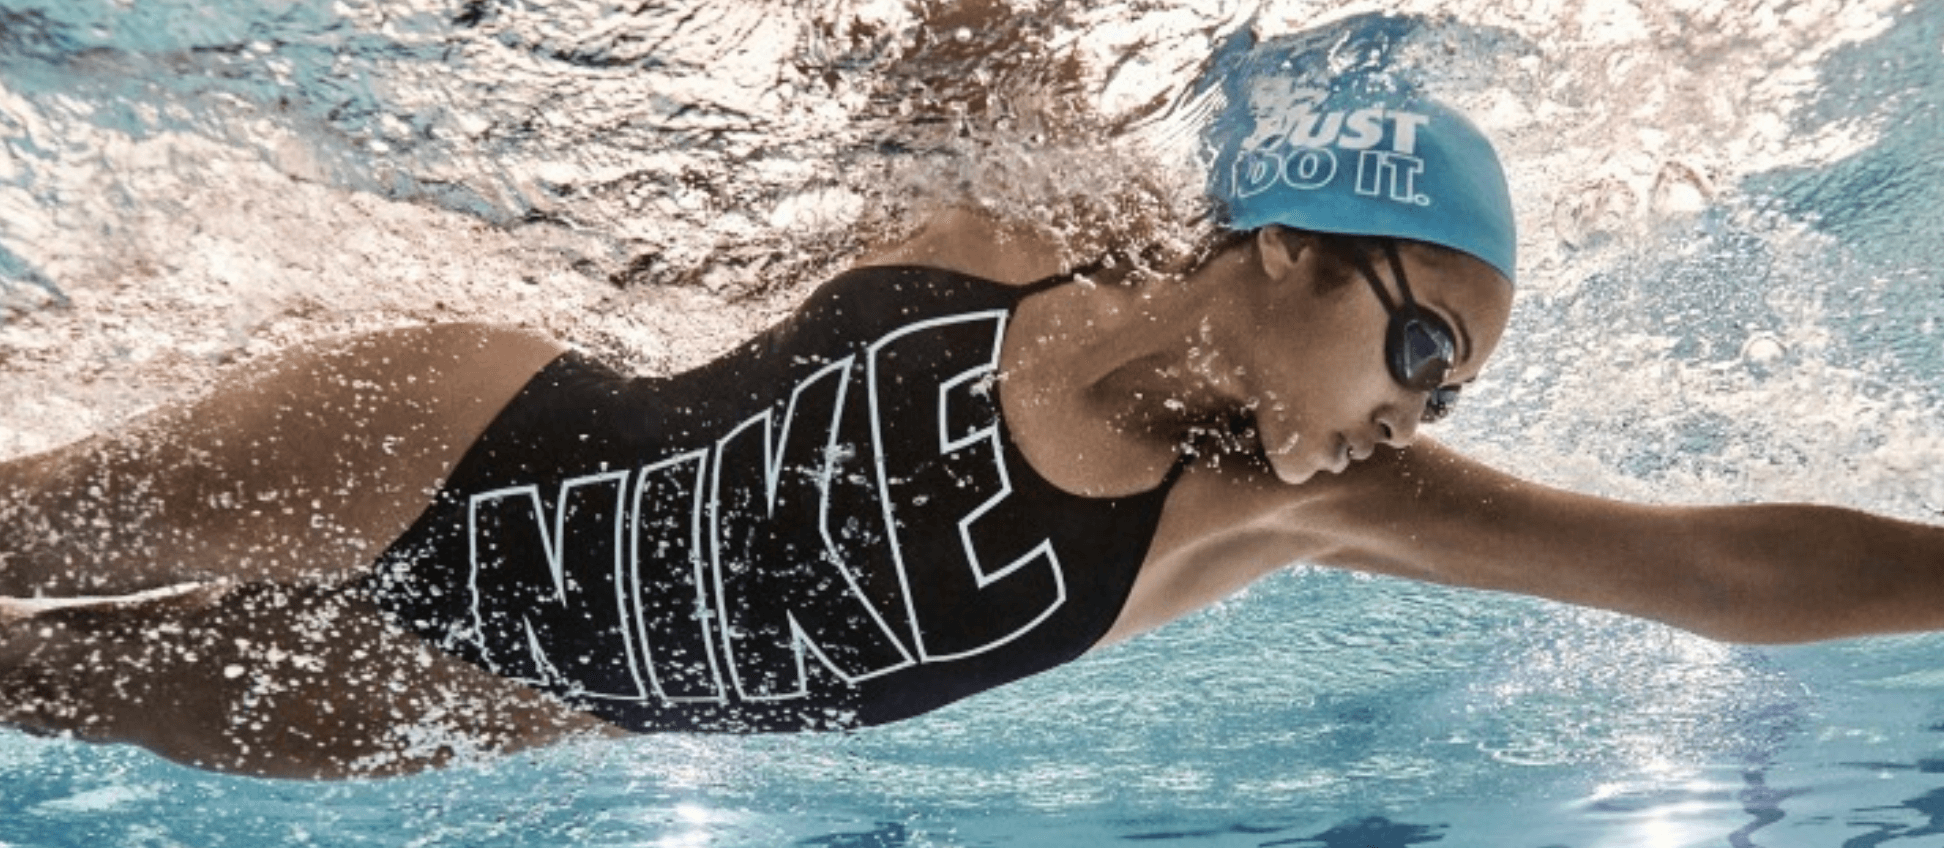 c5829331d5 2019 Nike Stroke Technique Swim Camps – Sign Up Today